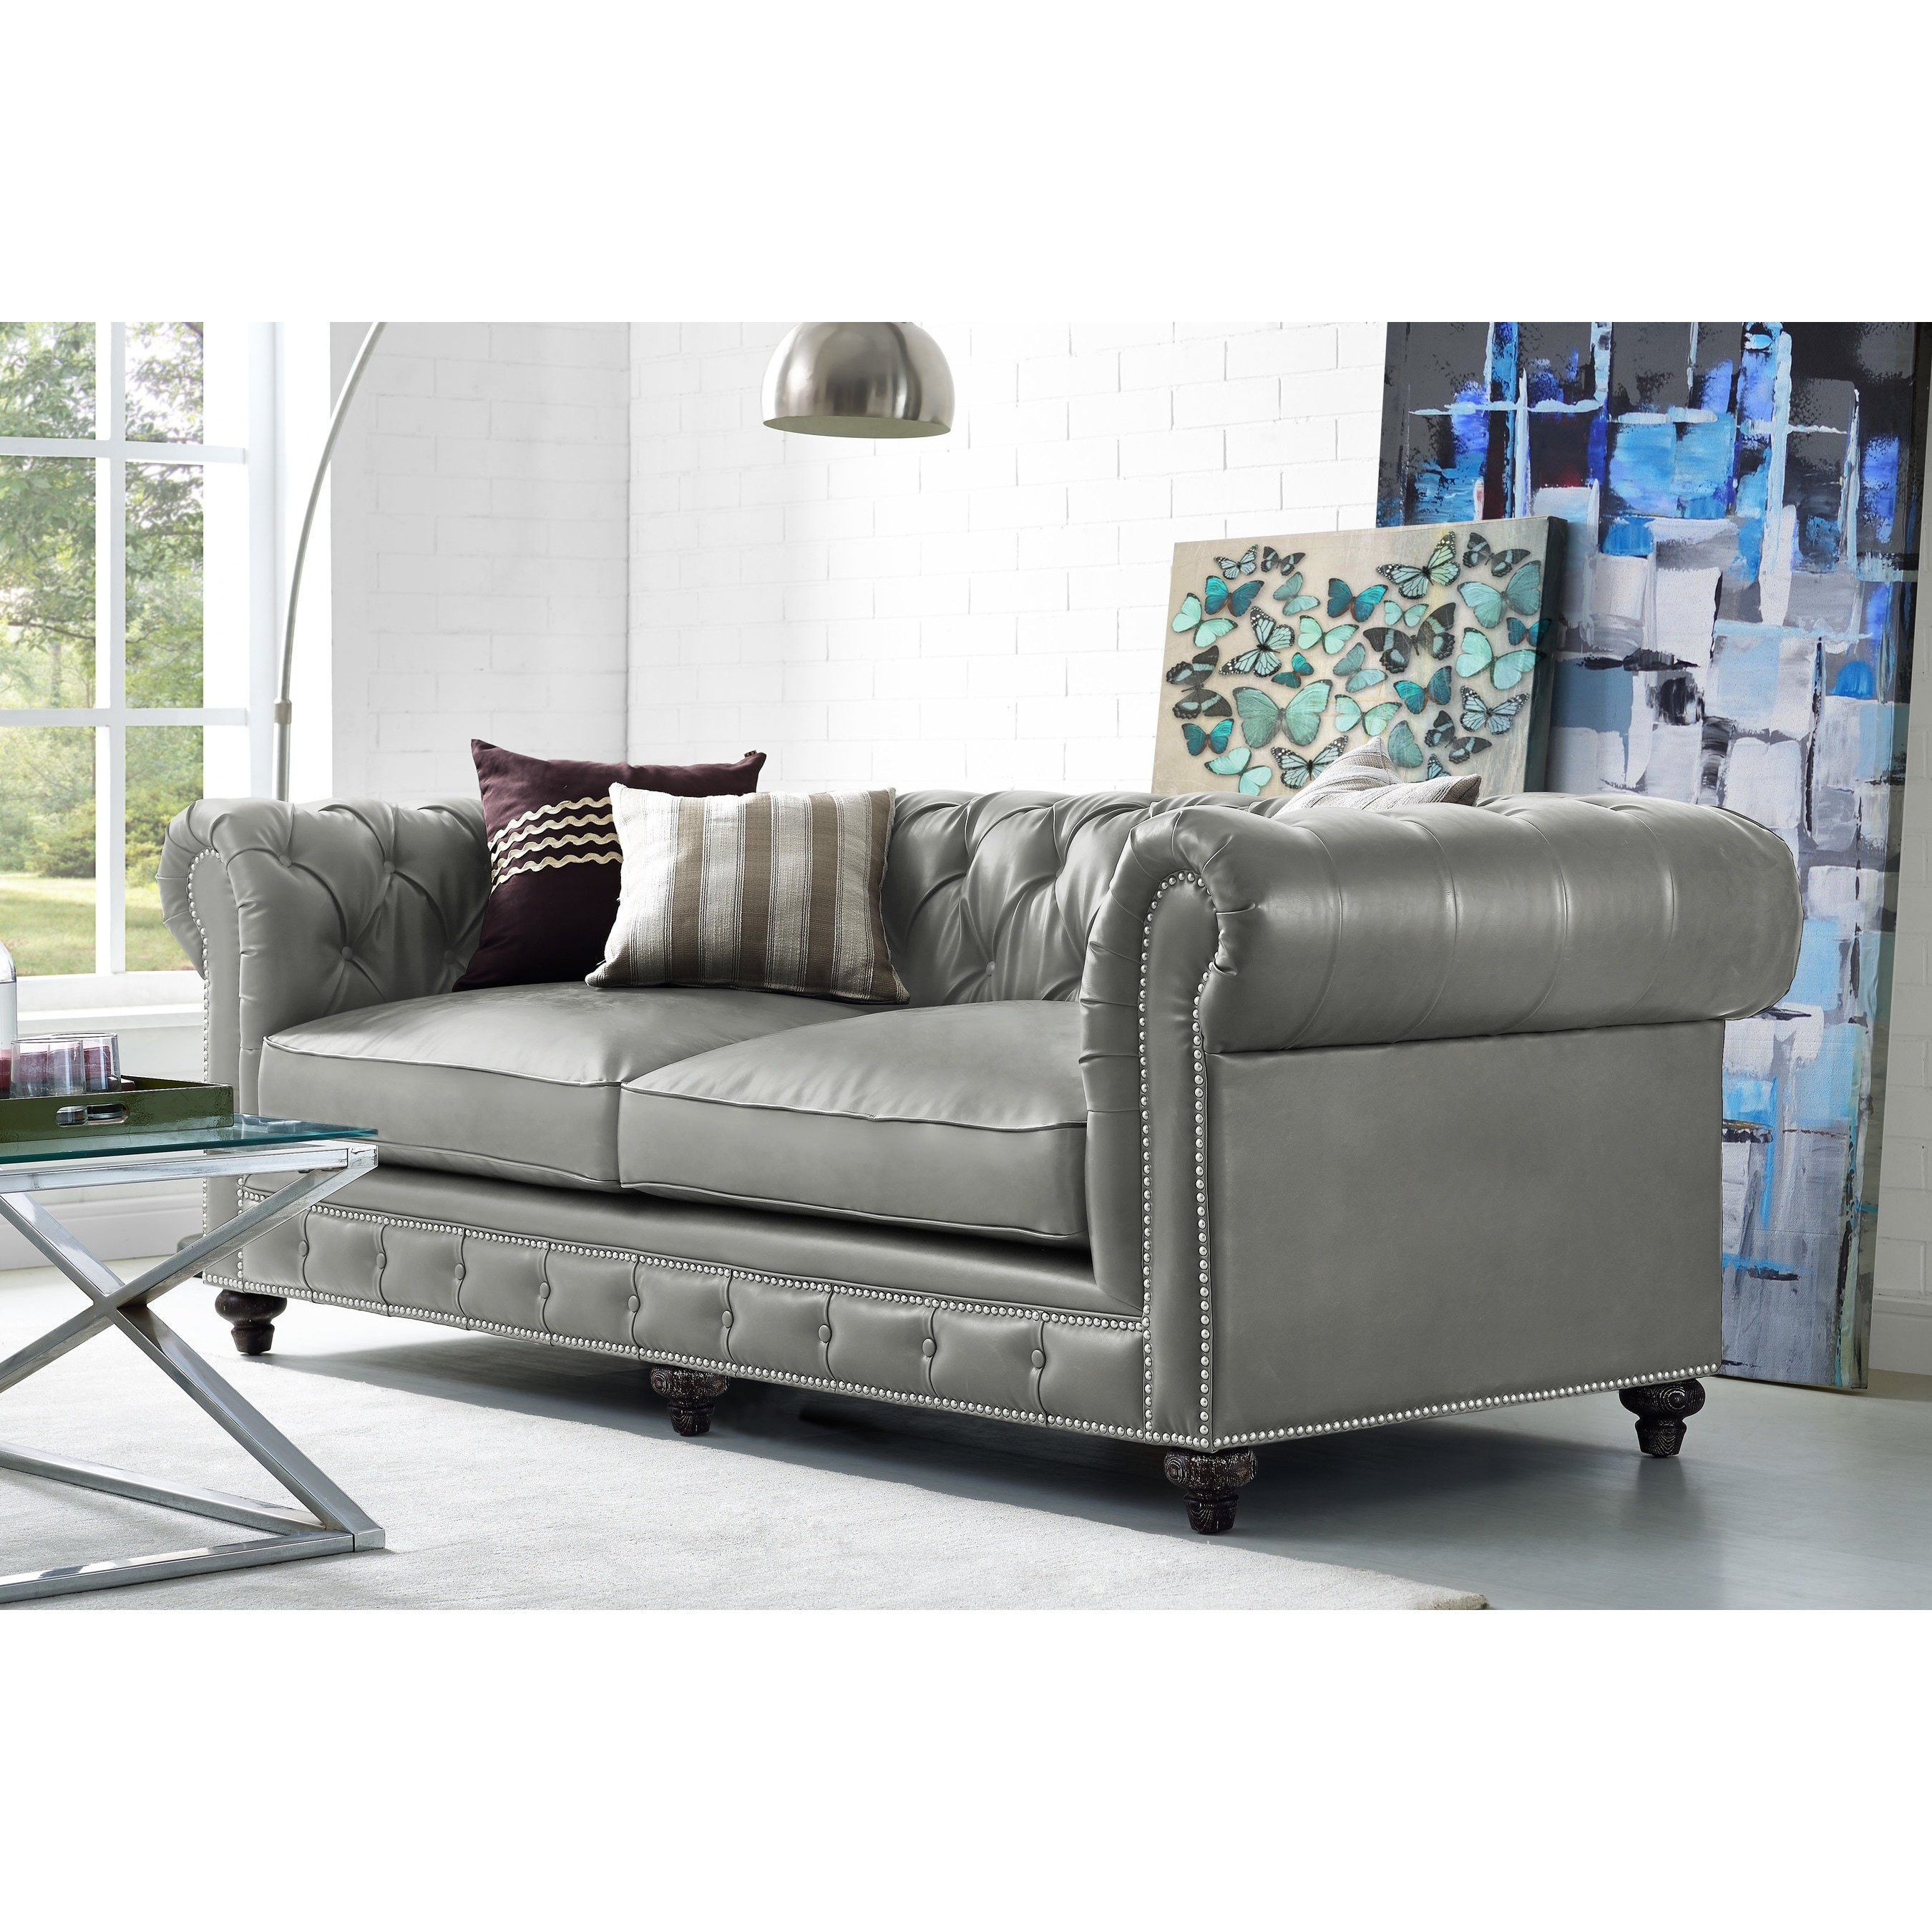 Rustic Grey Leather Sofa With Chesterfield Design Free Shipping Today 11651453